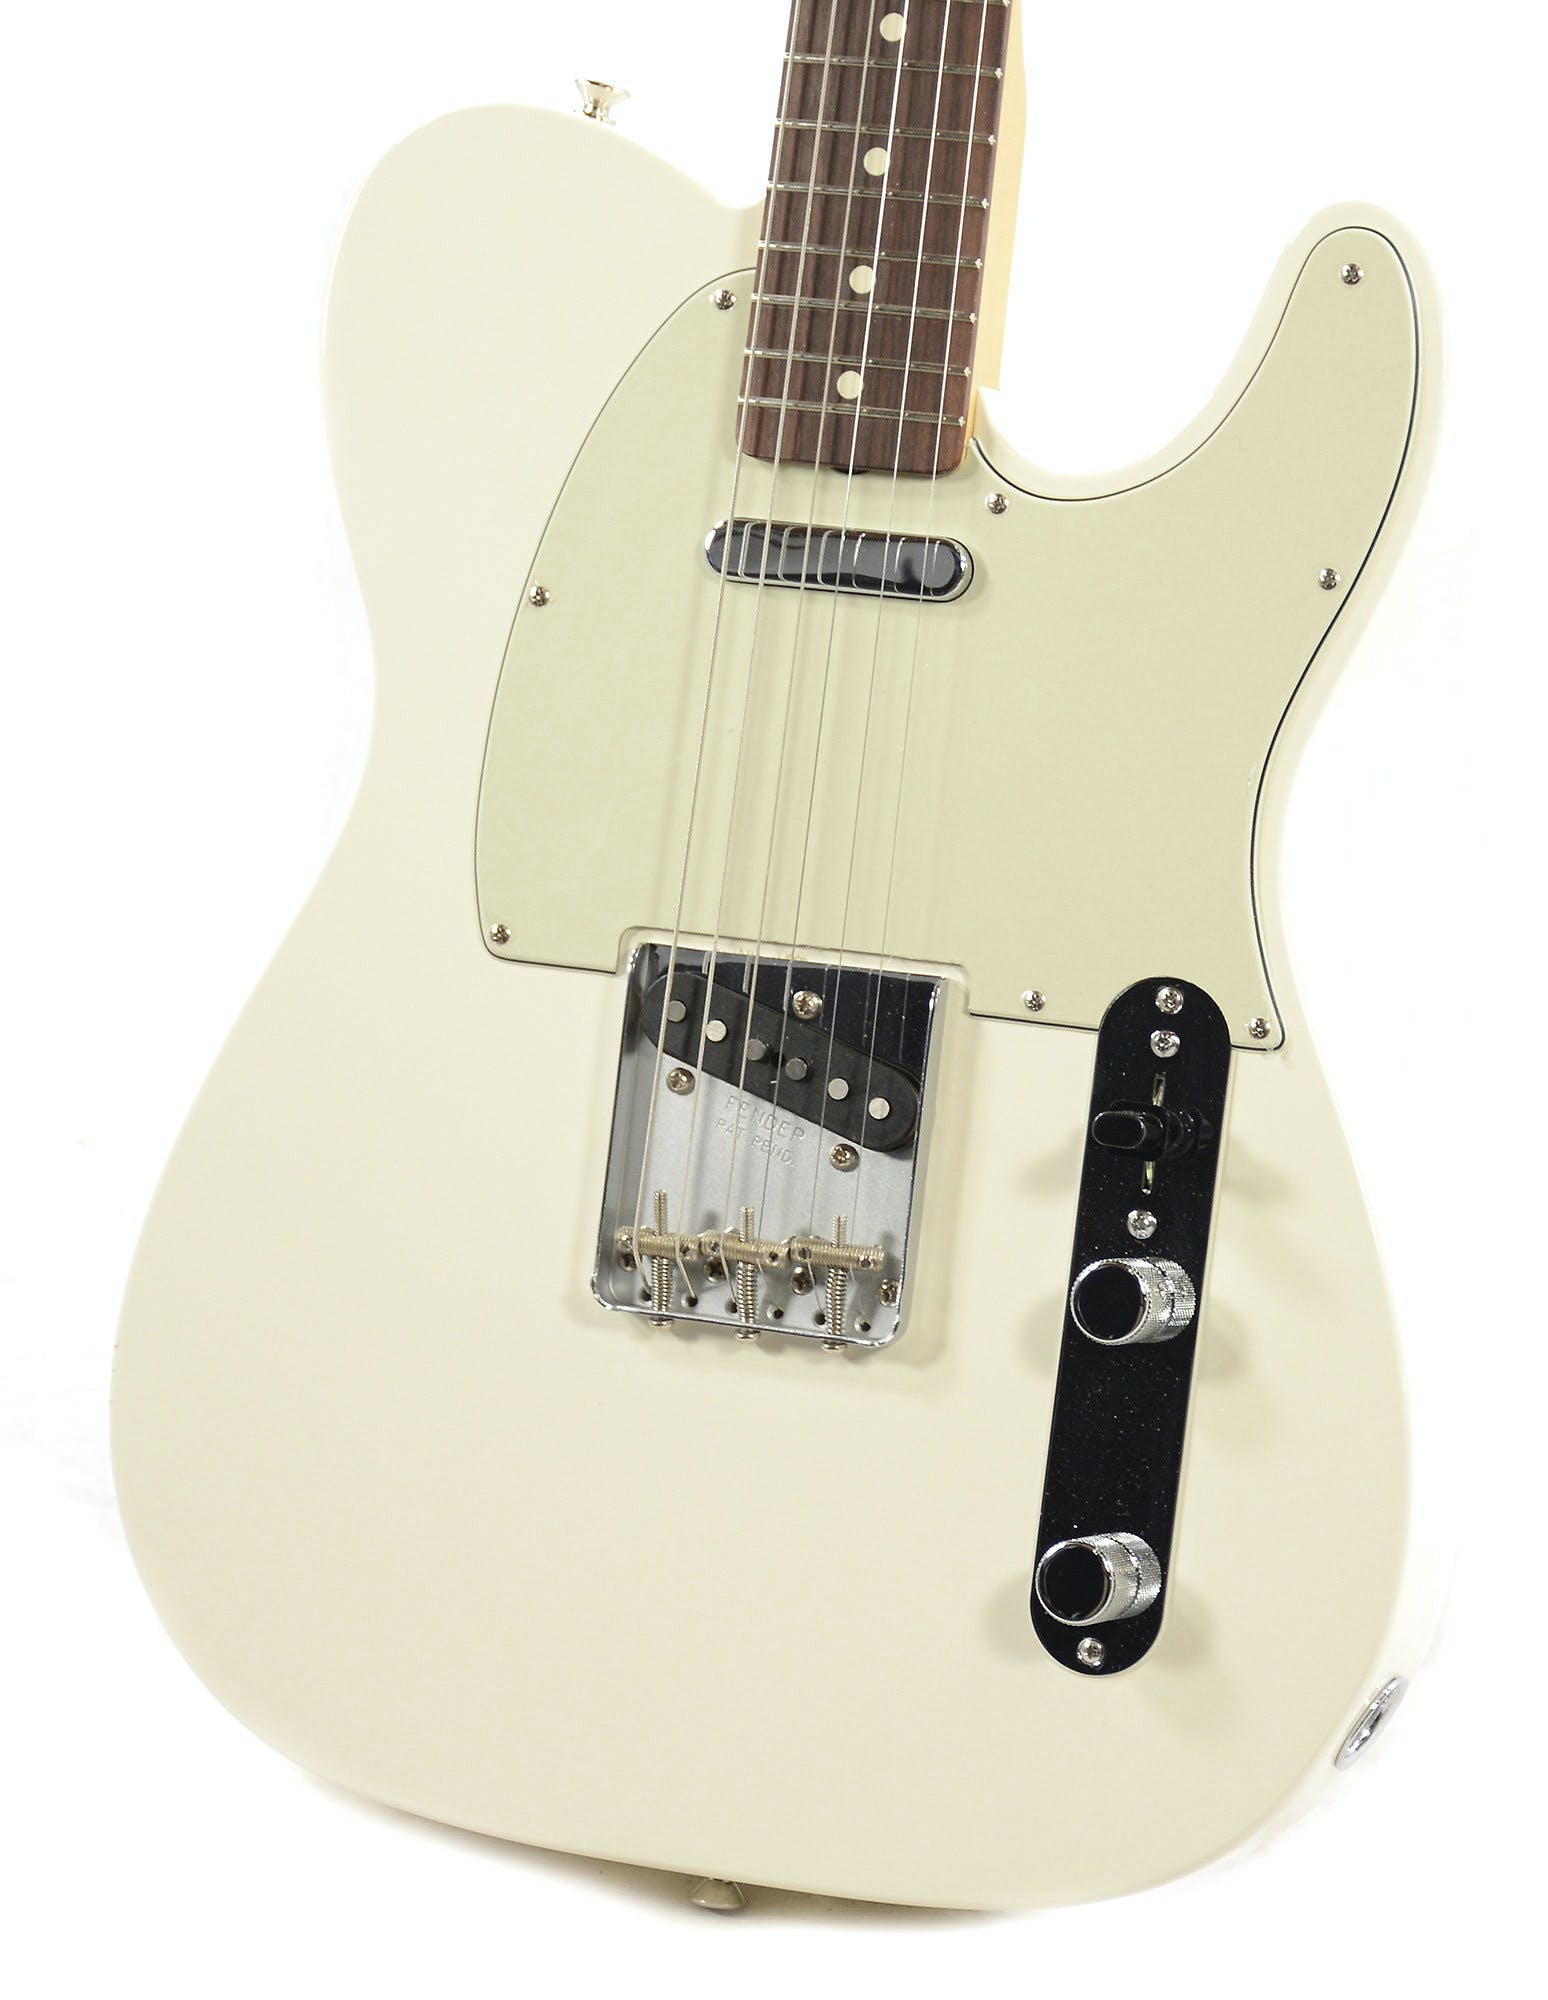 WHITE PEARLOID BLIND FACE SCRATCHPLATE FOR TELECASTER